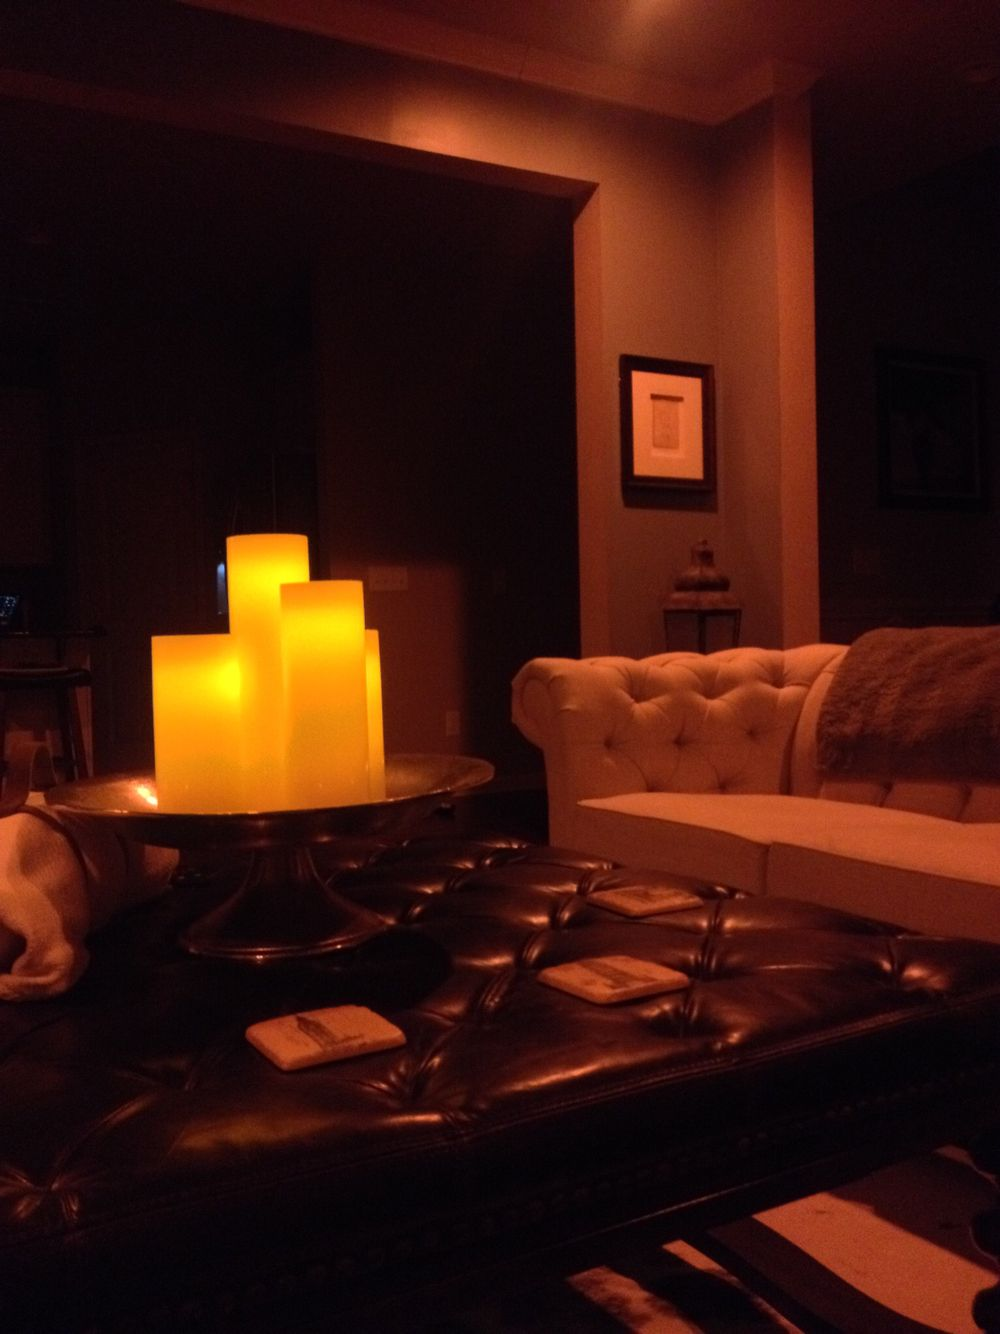 Living Room At Night Philips Hue Lighting Oversized Leather Ottoman Remote Controlled Candles Picture Art Phillips Hue Lighting Hue Philips Hue Lights #philips #hue #living #room